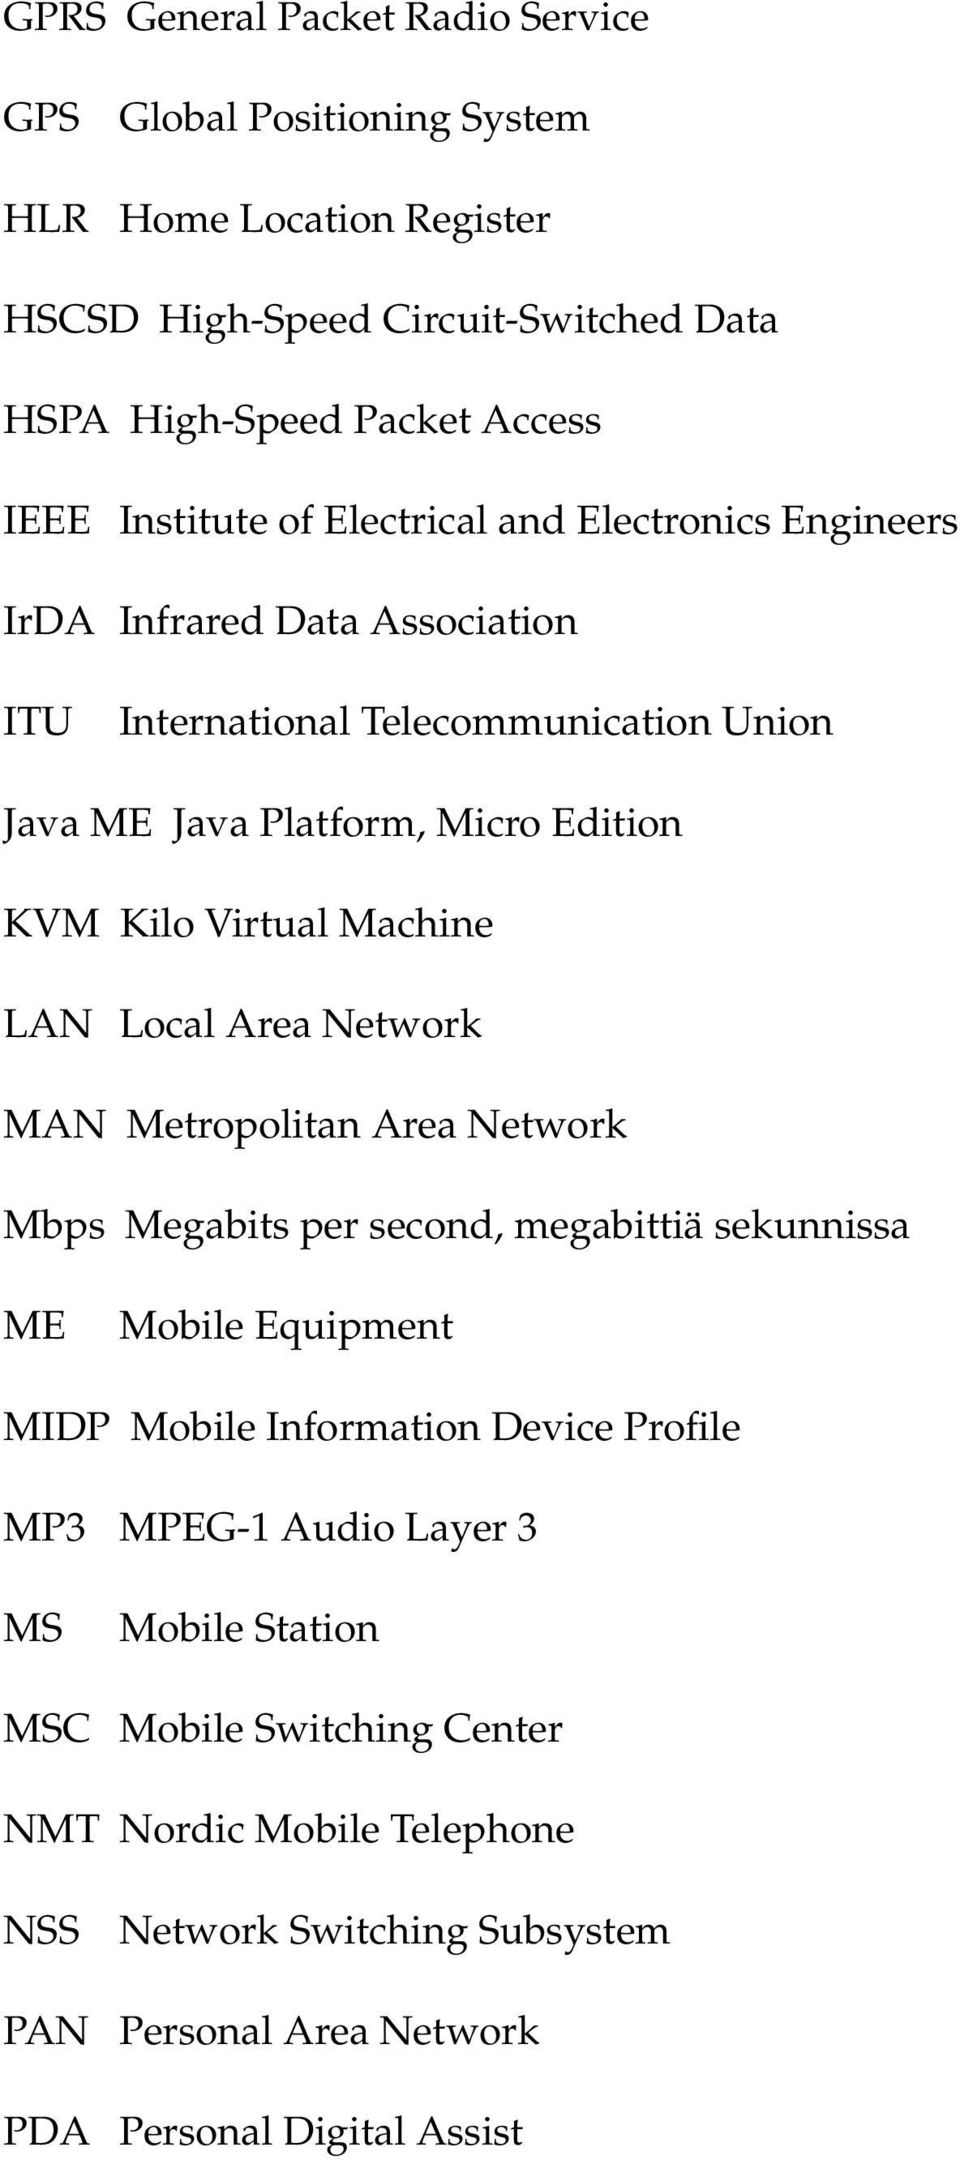 Virtual Machine LAN Local Area Network MAN Metropolitan Area Network Mbps Megabits per second, megabittiä sekunnissa ME Mobile Equipment MIDP Mobile Information Device